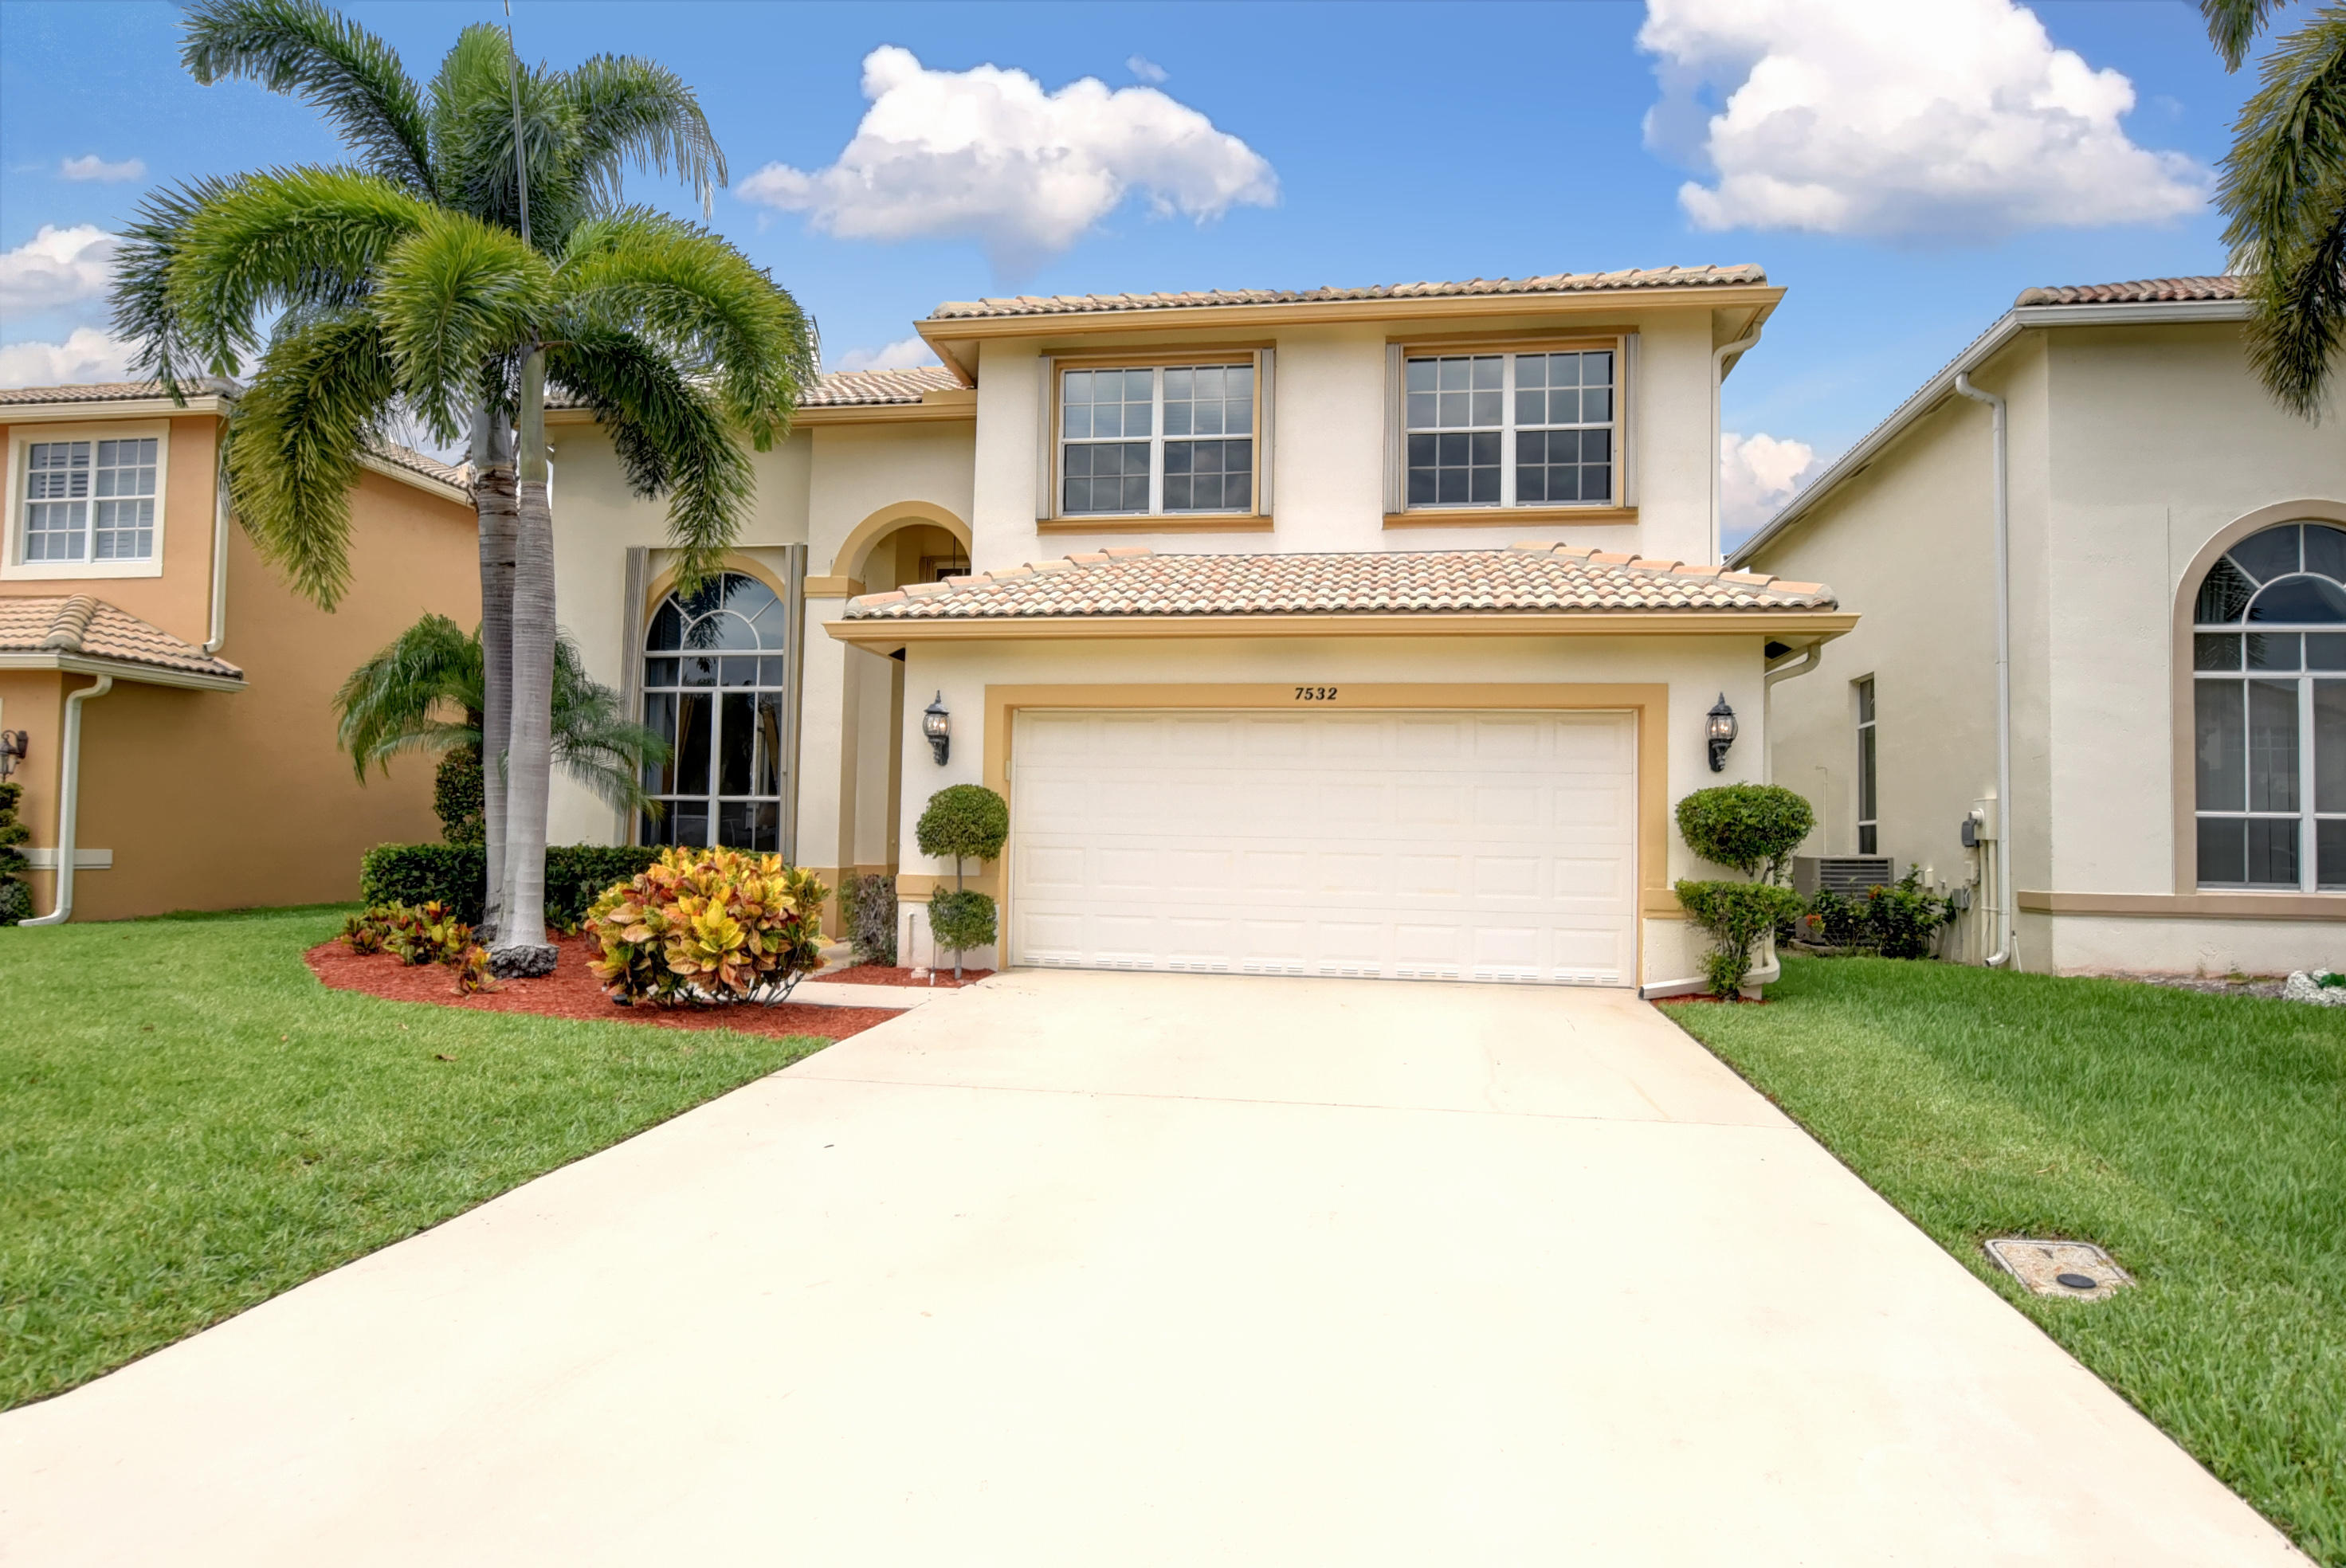 Home for sale in Colony At Boynton Beach Boynton Beach Florida